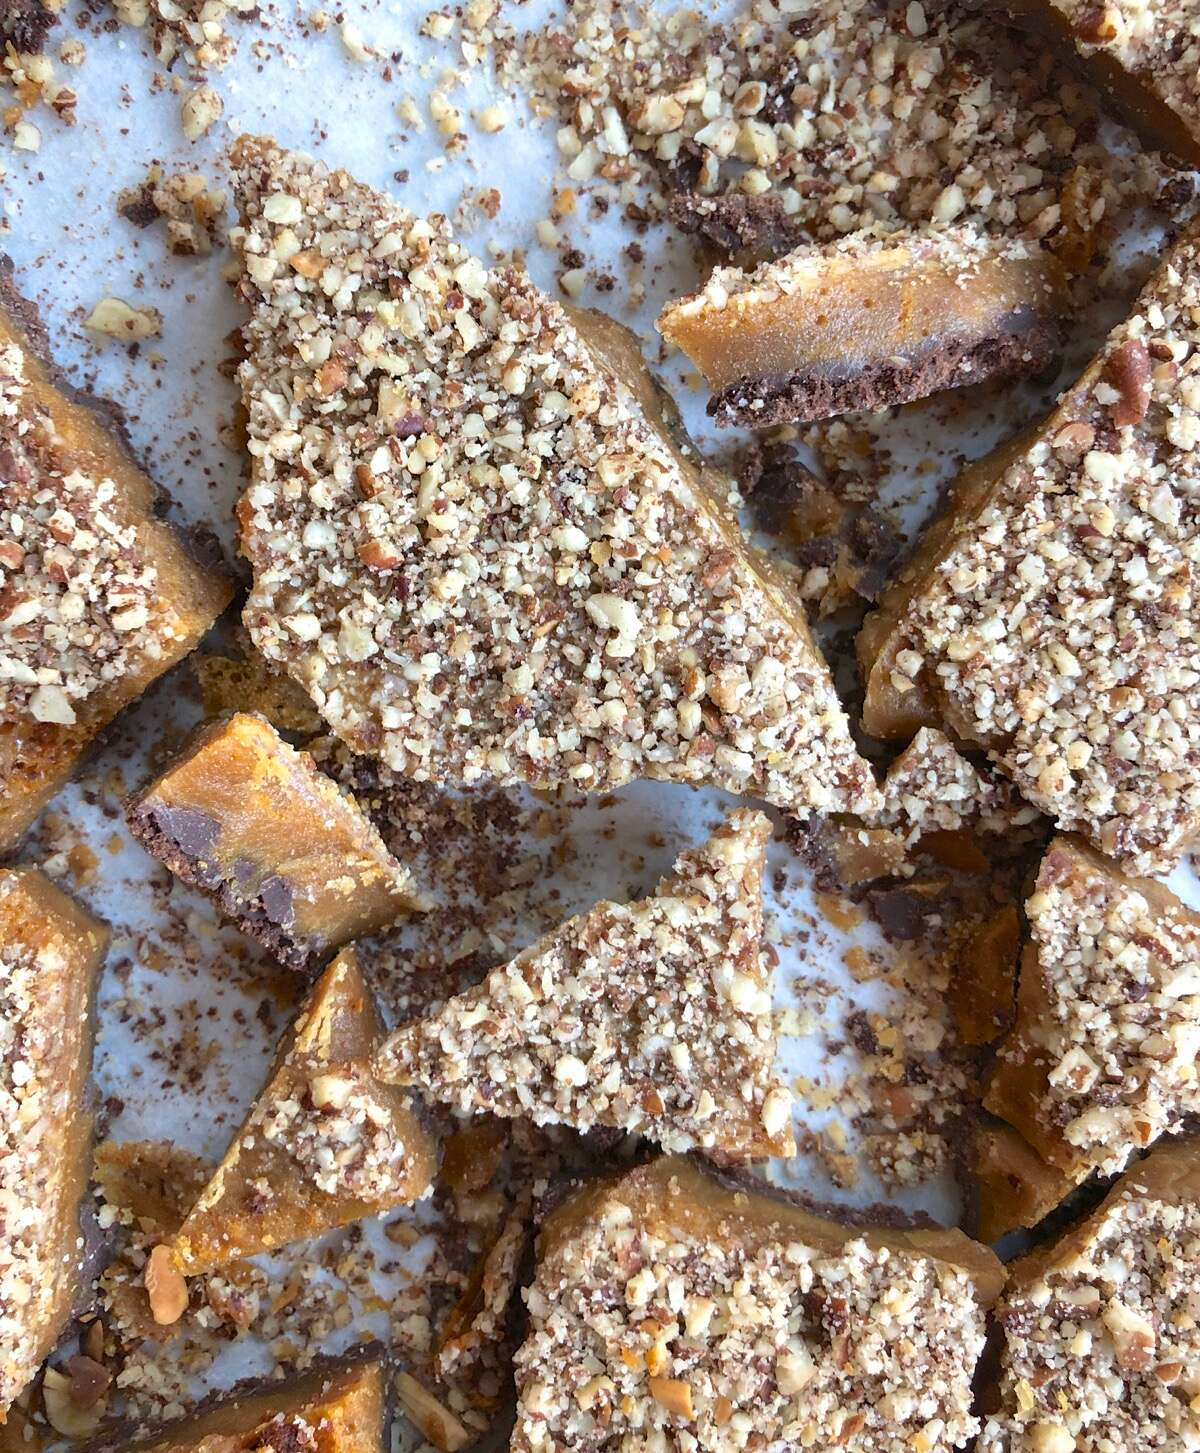 Tips for making English toffee via @kingarthurflour